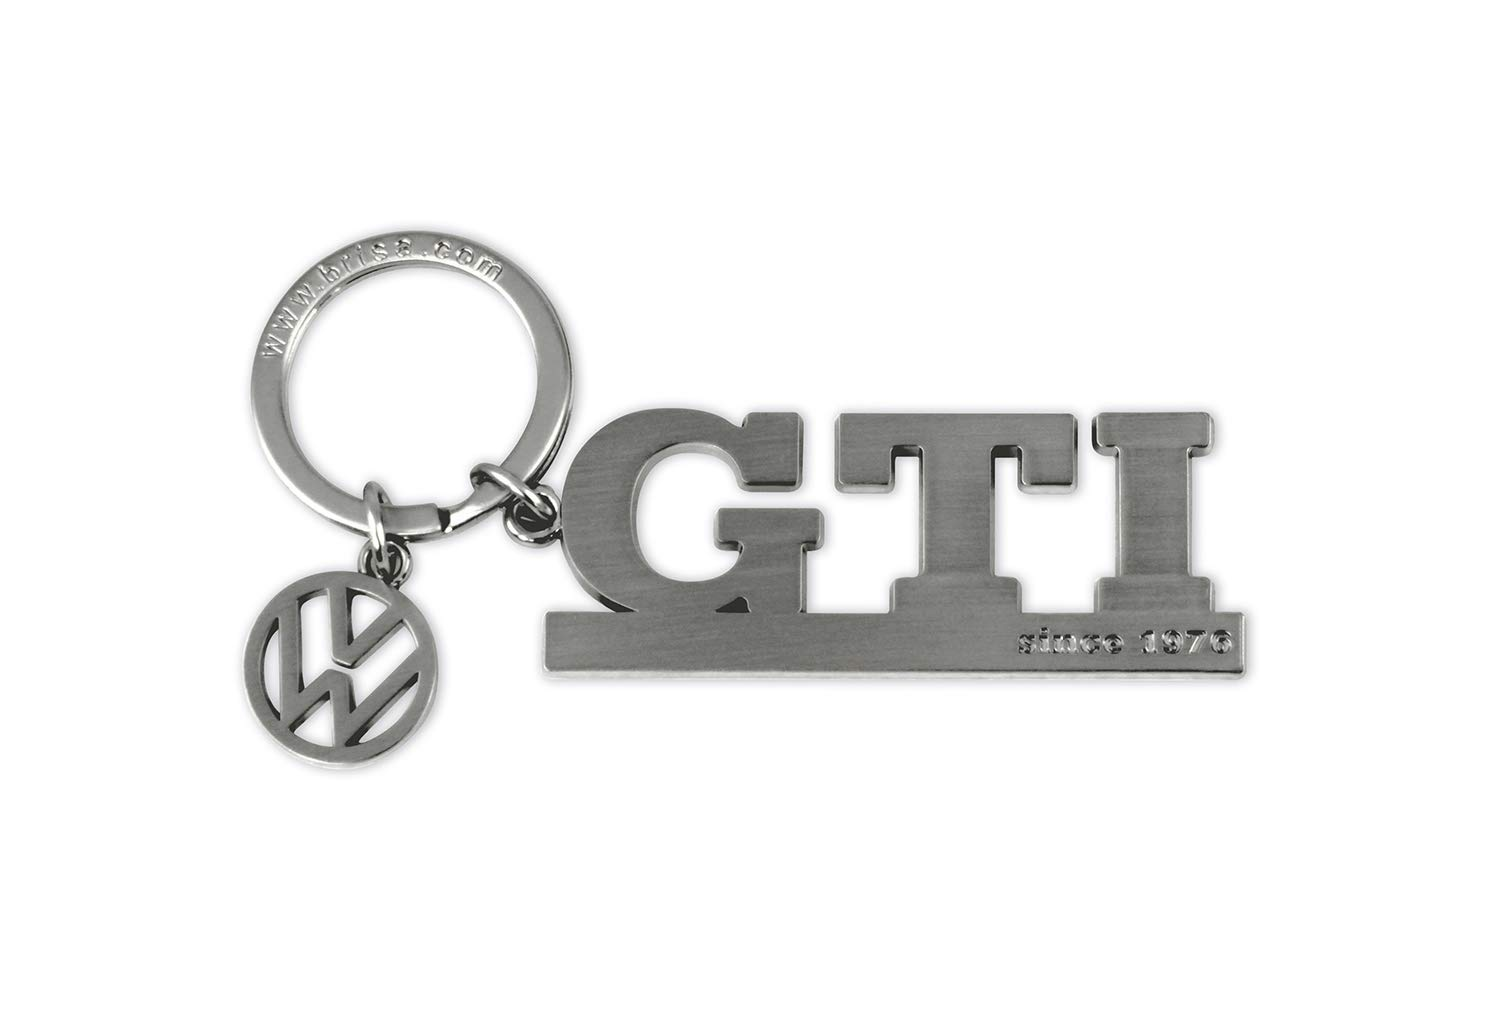 Amazon.com: BRISA VW Collection VW GTI - Llavero con ...